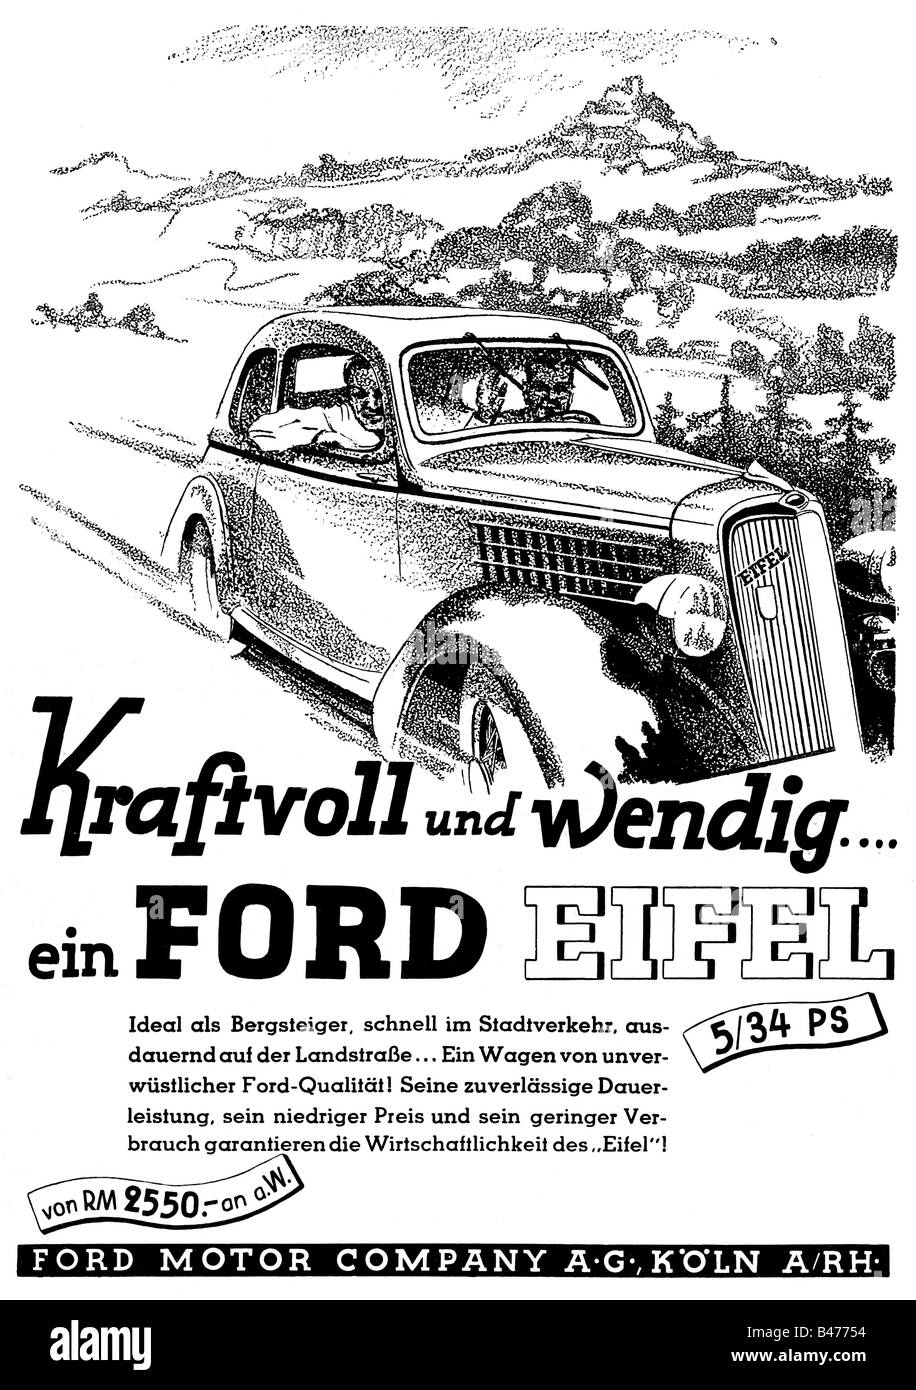 Advertising cars ford eifel ford motor company for Ford motor company stock